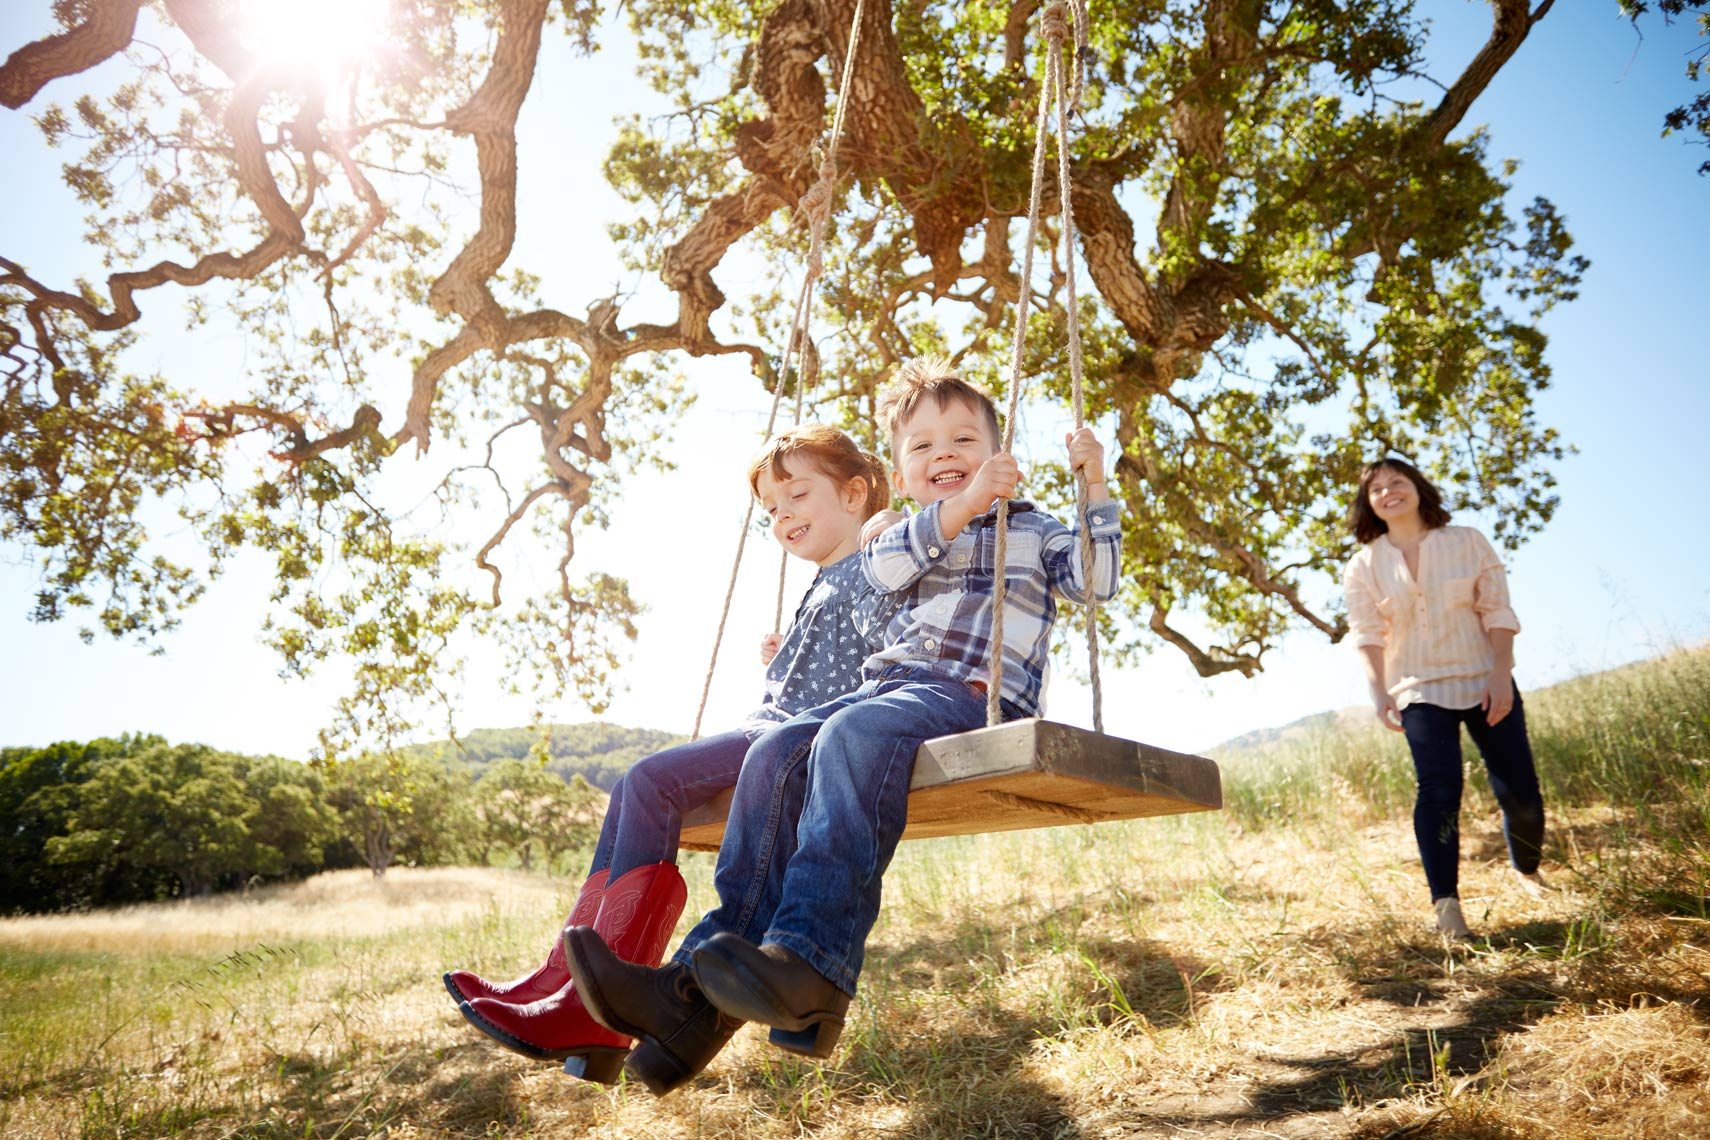 lifestyle photographer, advertising photographer, kids playing, kids on the swing, oak tree, outdoor playground, girl and boy, kids in cowboy boots